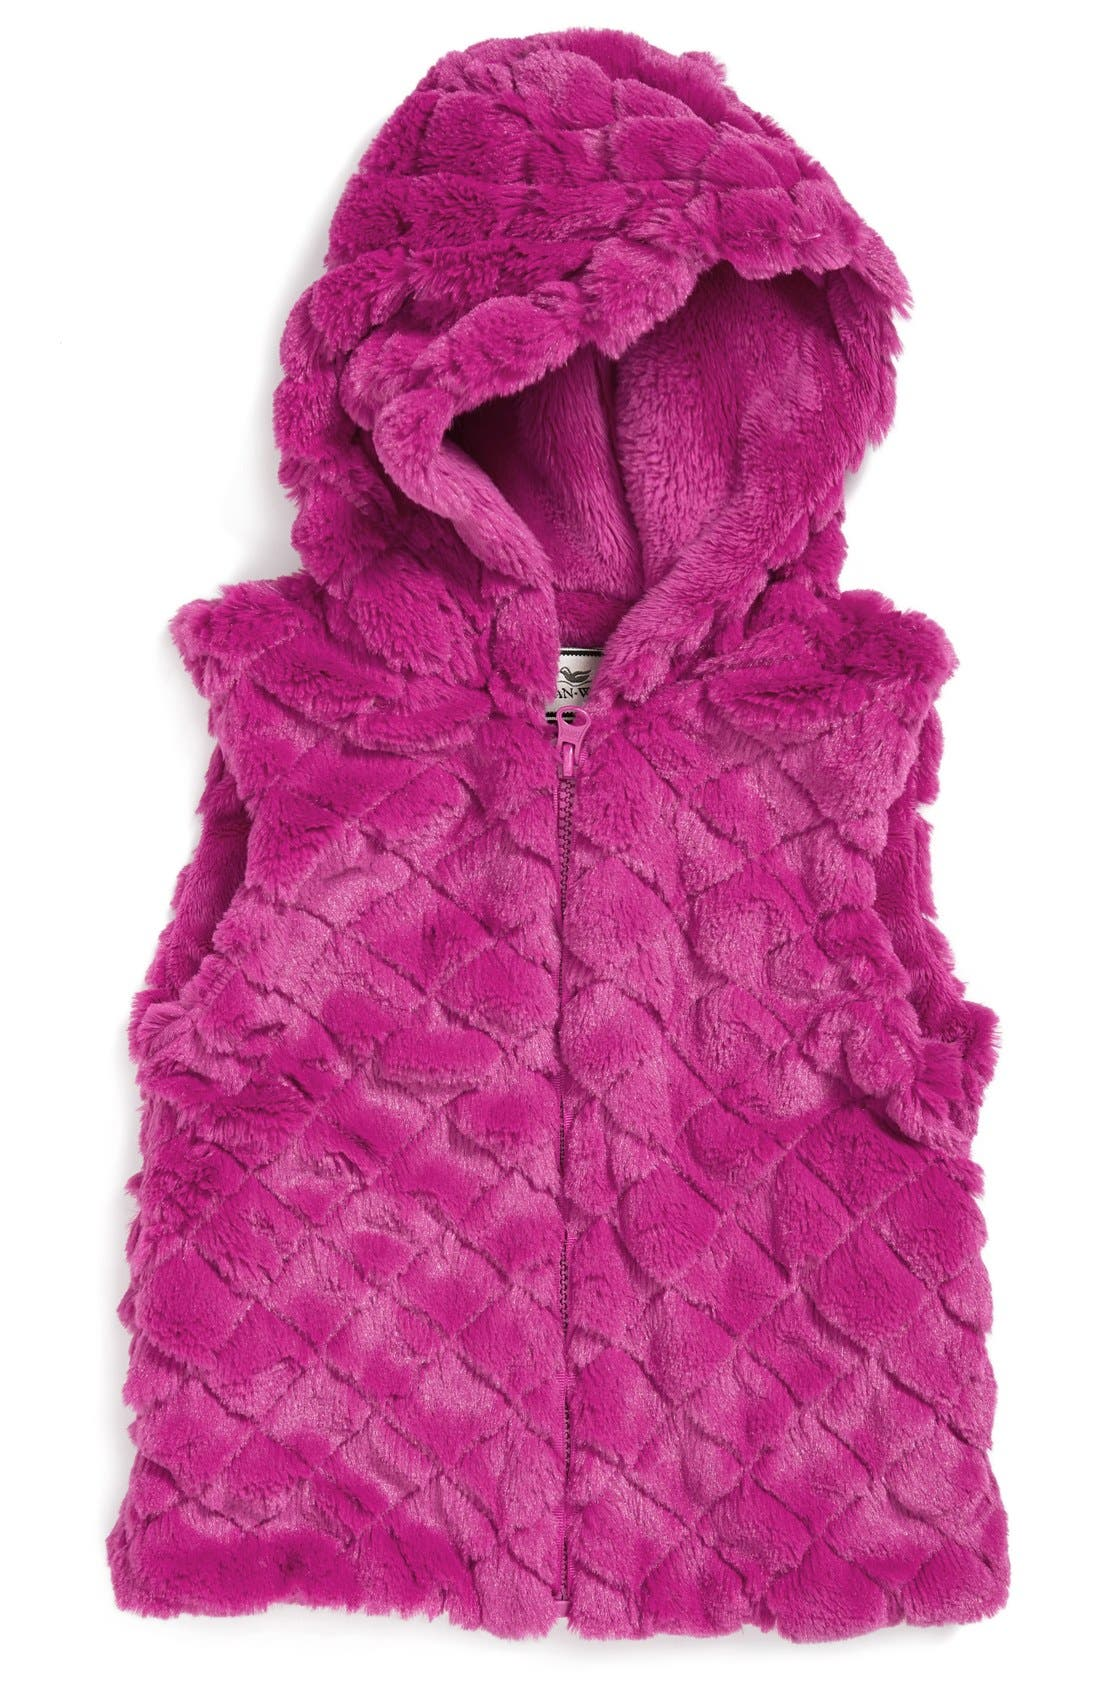 Alternate Image 1 Selected - Widgeon Hooded Faux Fur Vest (Toddler Girls, Little Girls & Big Girls) (Online Only)